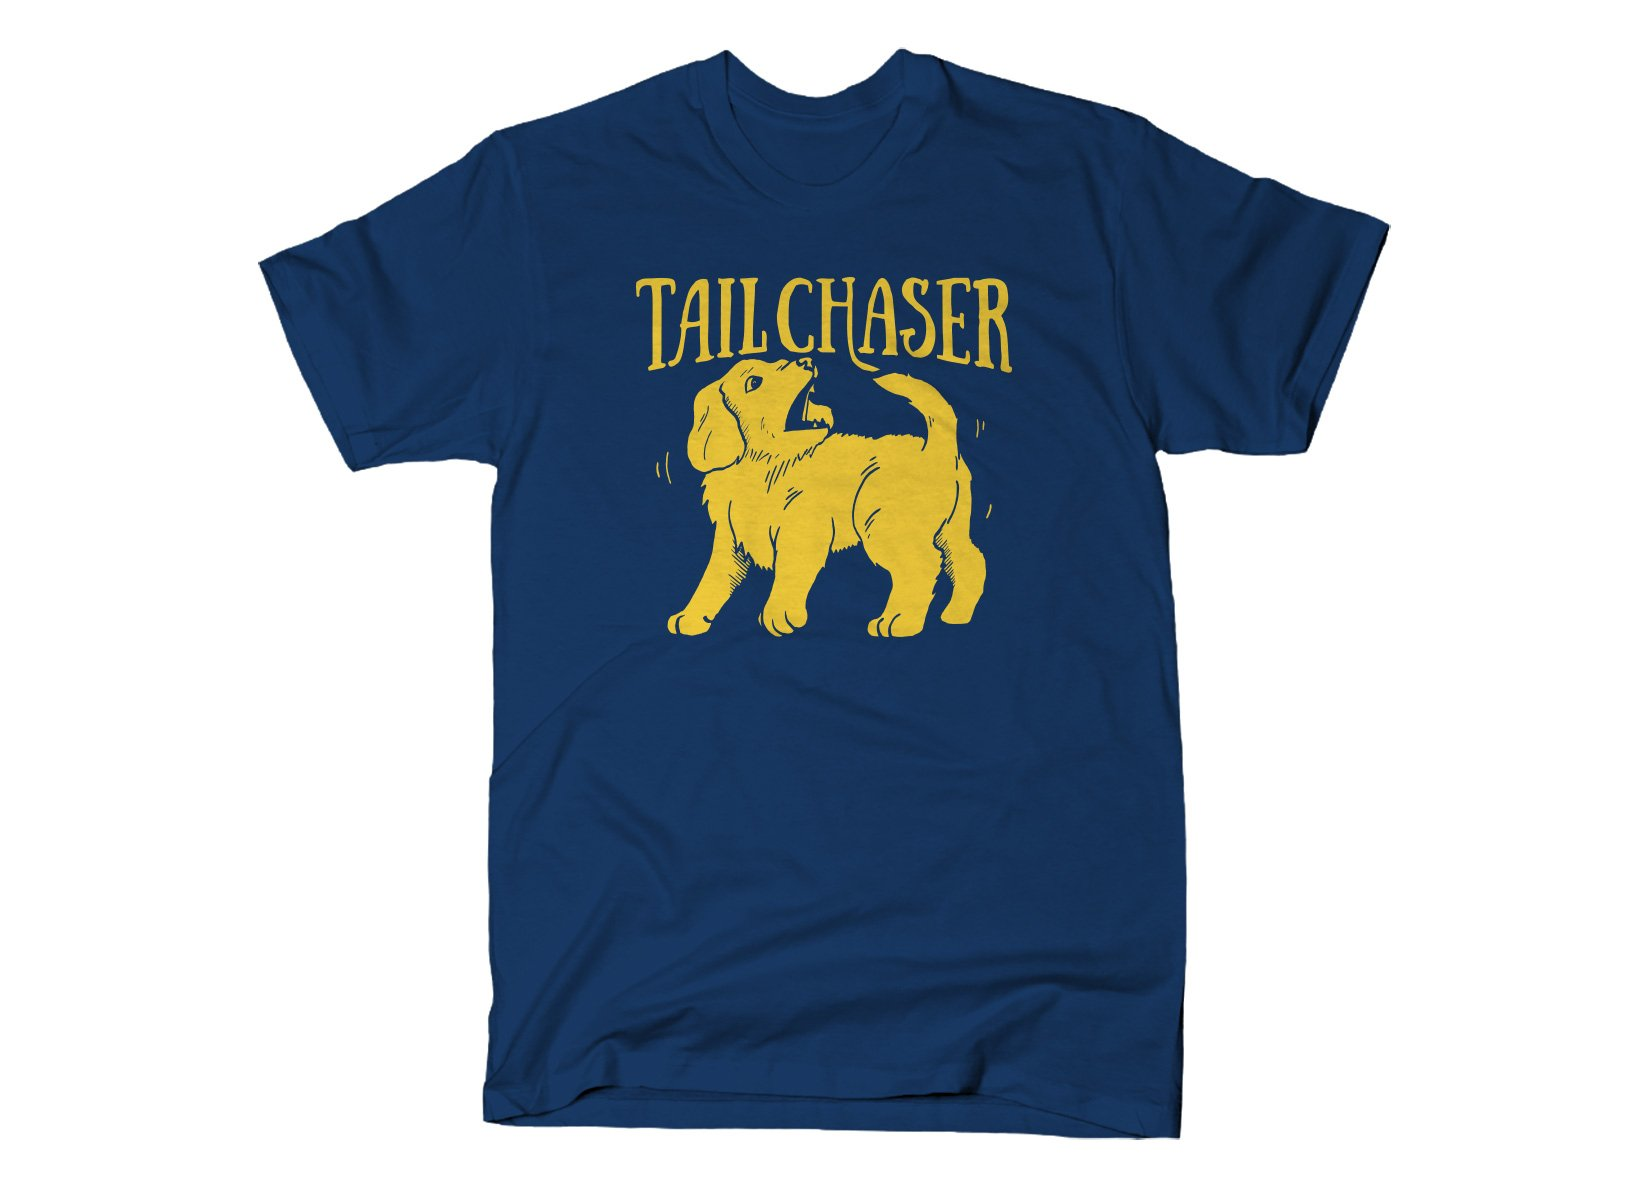 Tail Chaser on Mens T-Shirt